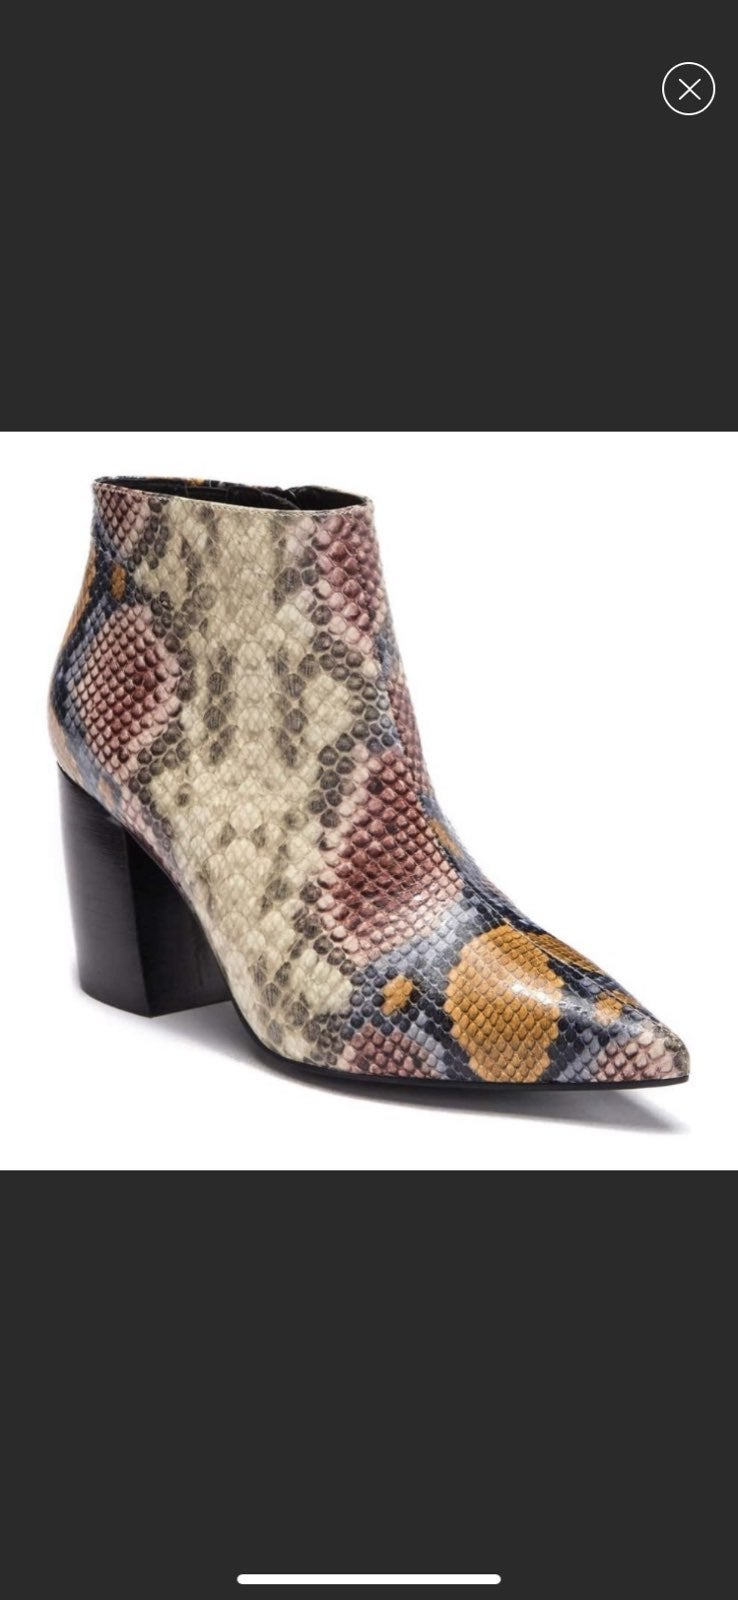 JEFFREY CAMPBELL SNAKE EMBOSSED BOOT